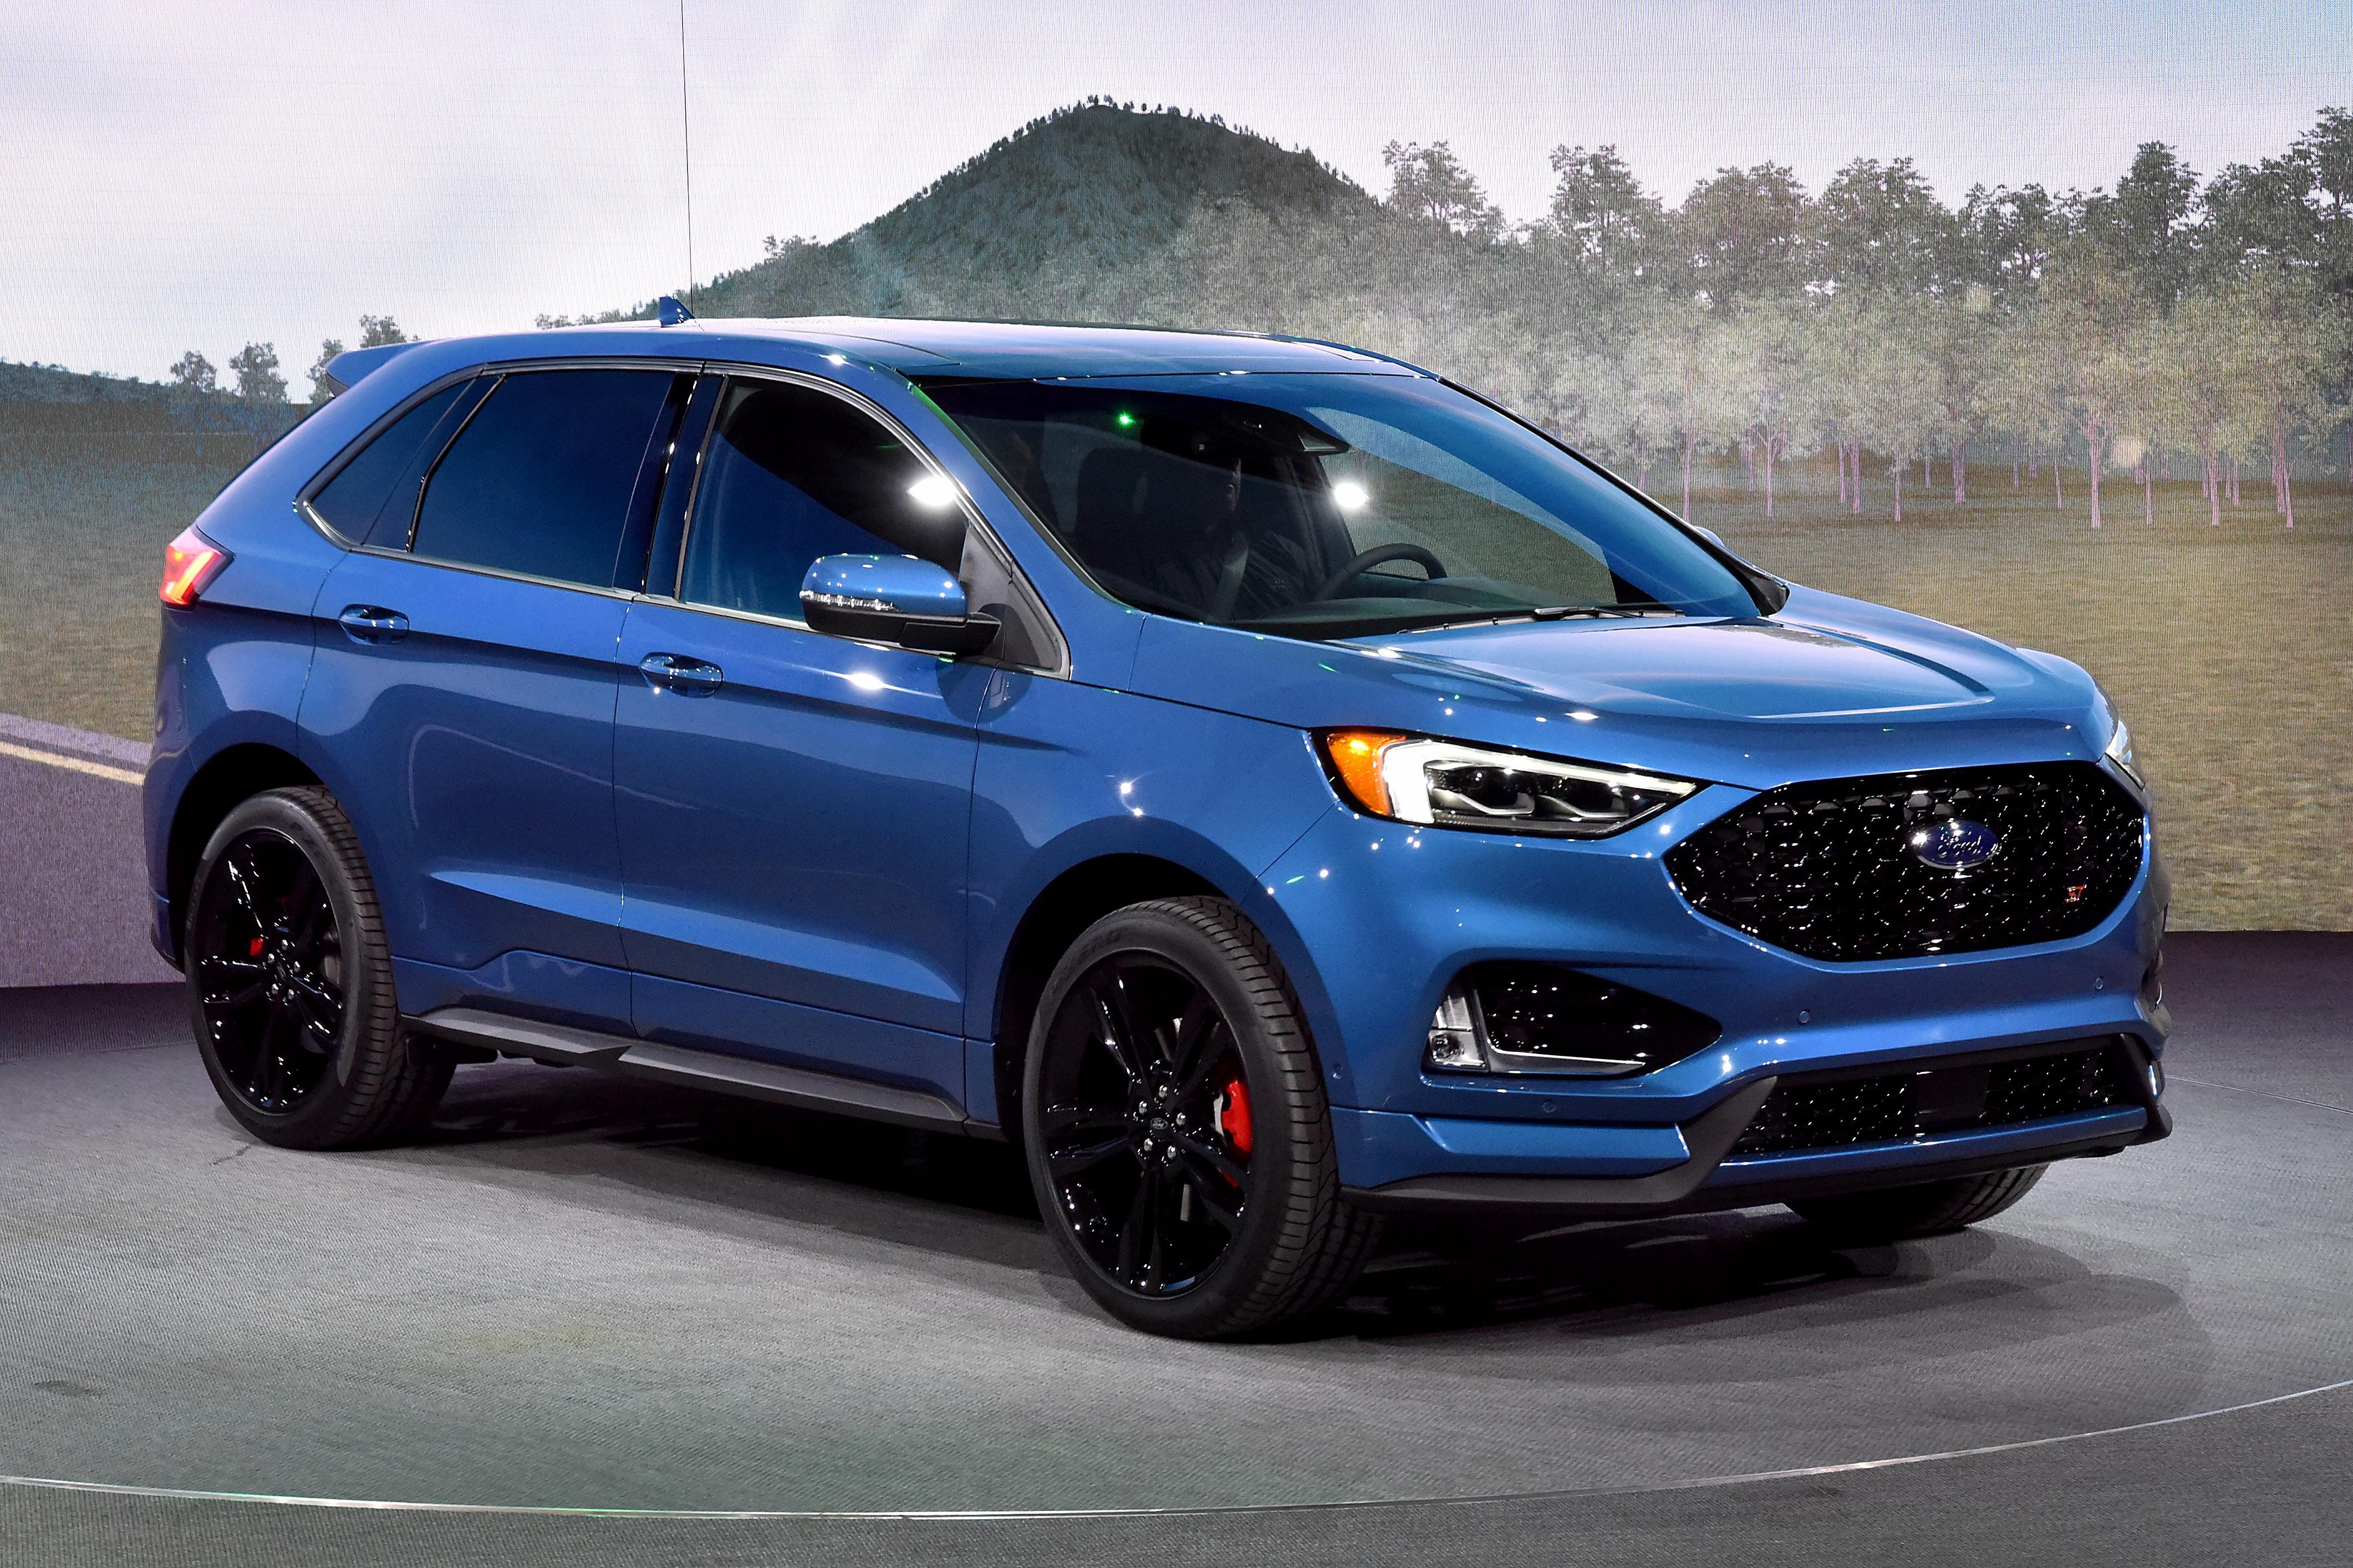 2019 Ford Edge is the First SUV to Feature Ford Co-Pilot 360